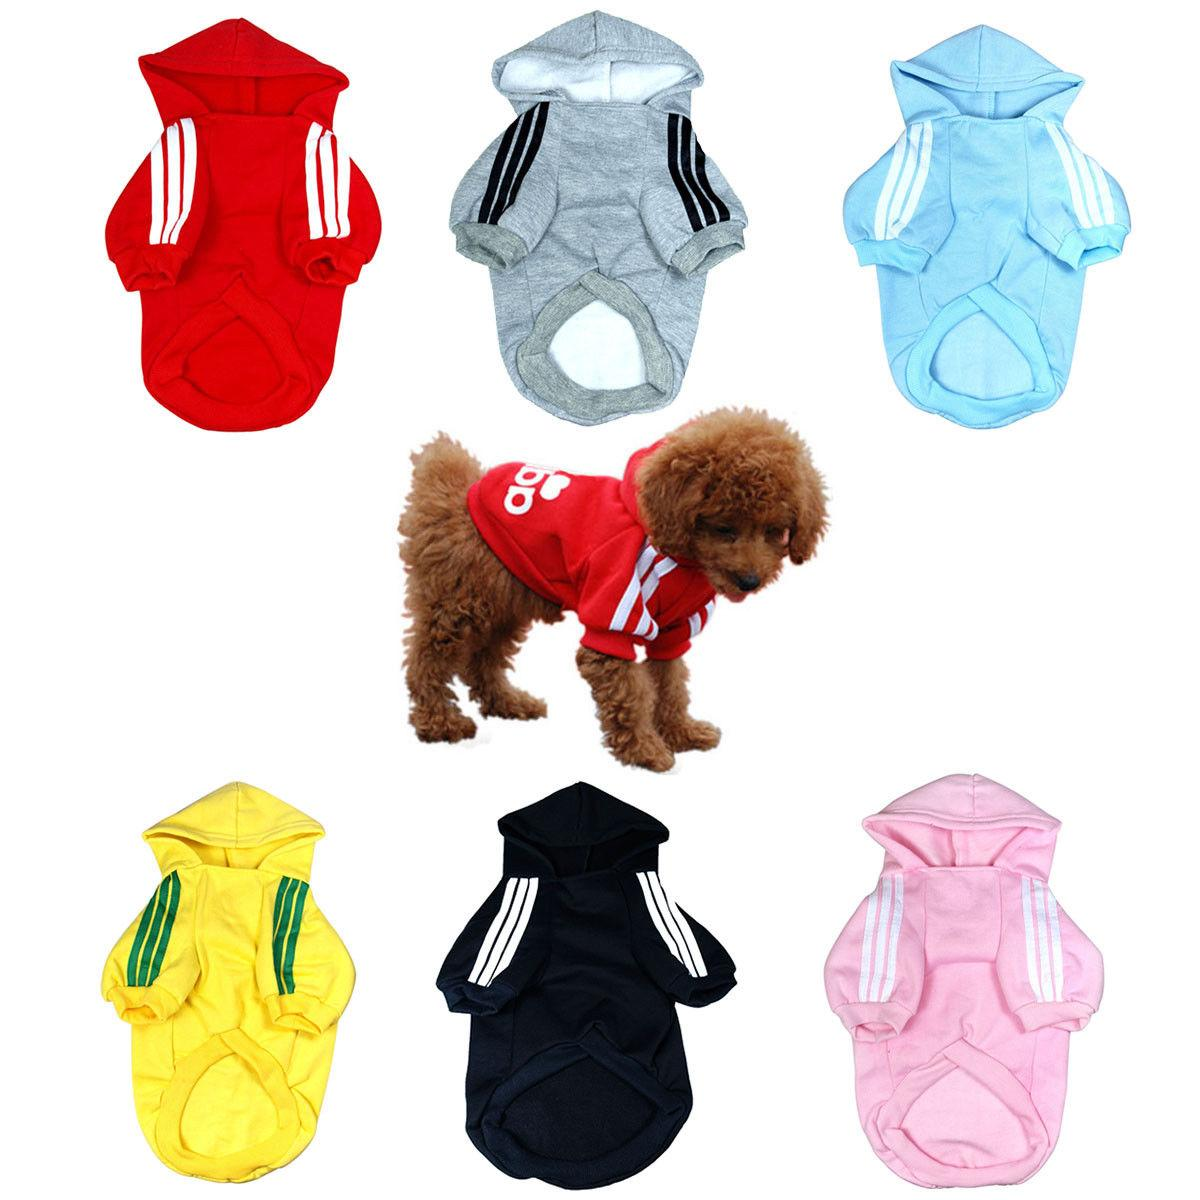 Adidog Puppy Hoodie Sweater Pullover Sweatshirt Warm Clothin